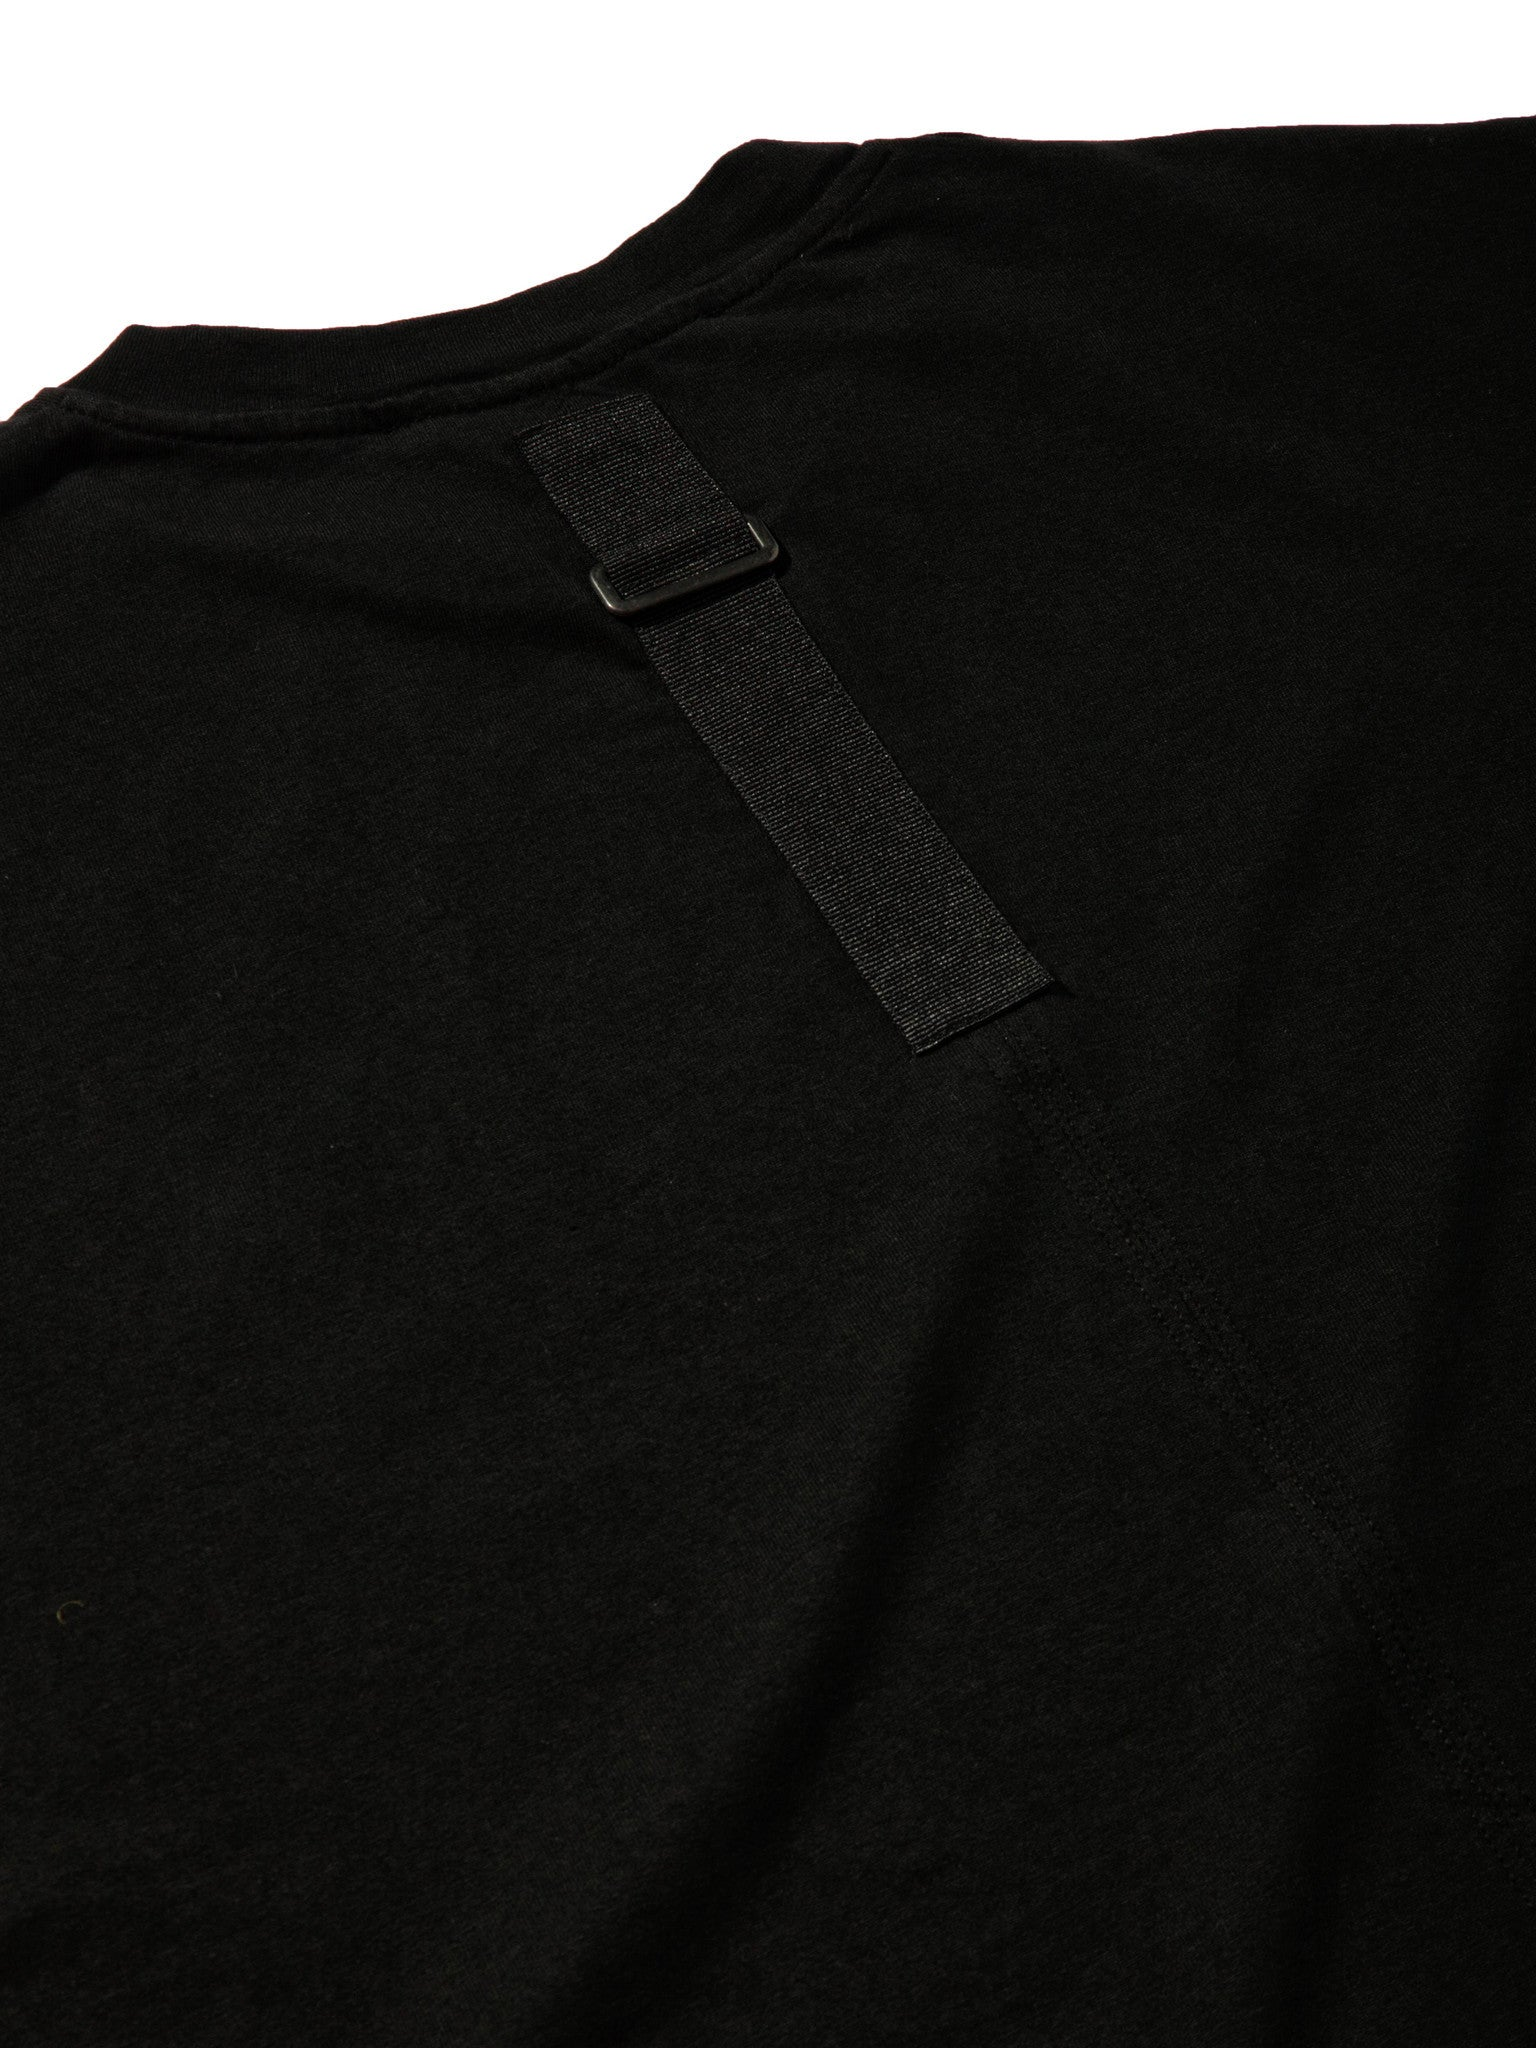 Black Jersey T-Shirt (Loose Fit) 6